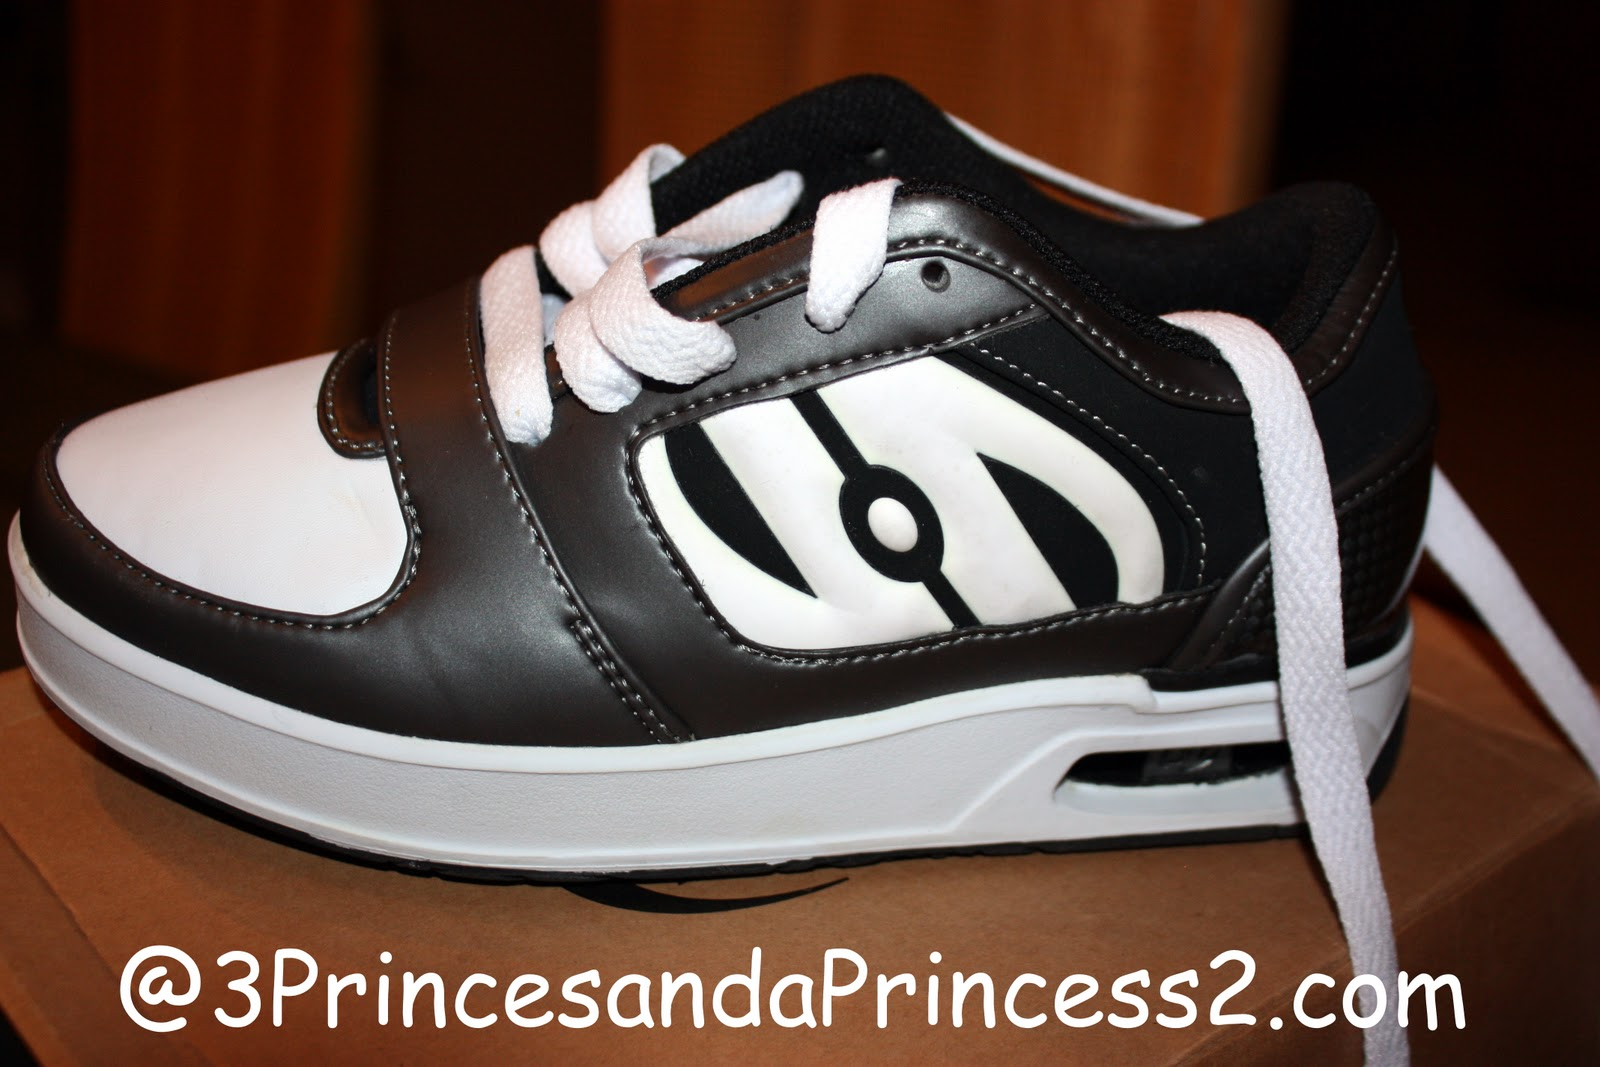 Heely skate shoes reviews - They Are A Great Fit And The Boys Love Them I Would However Recommend A Size Bigger Then You Or Your Child Normally Wears There Are So Many Styles To